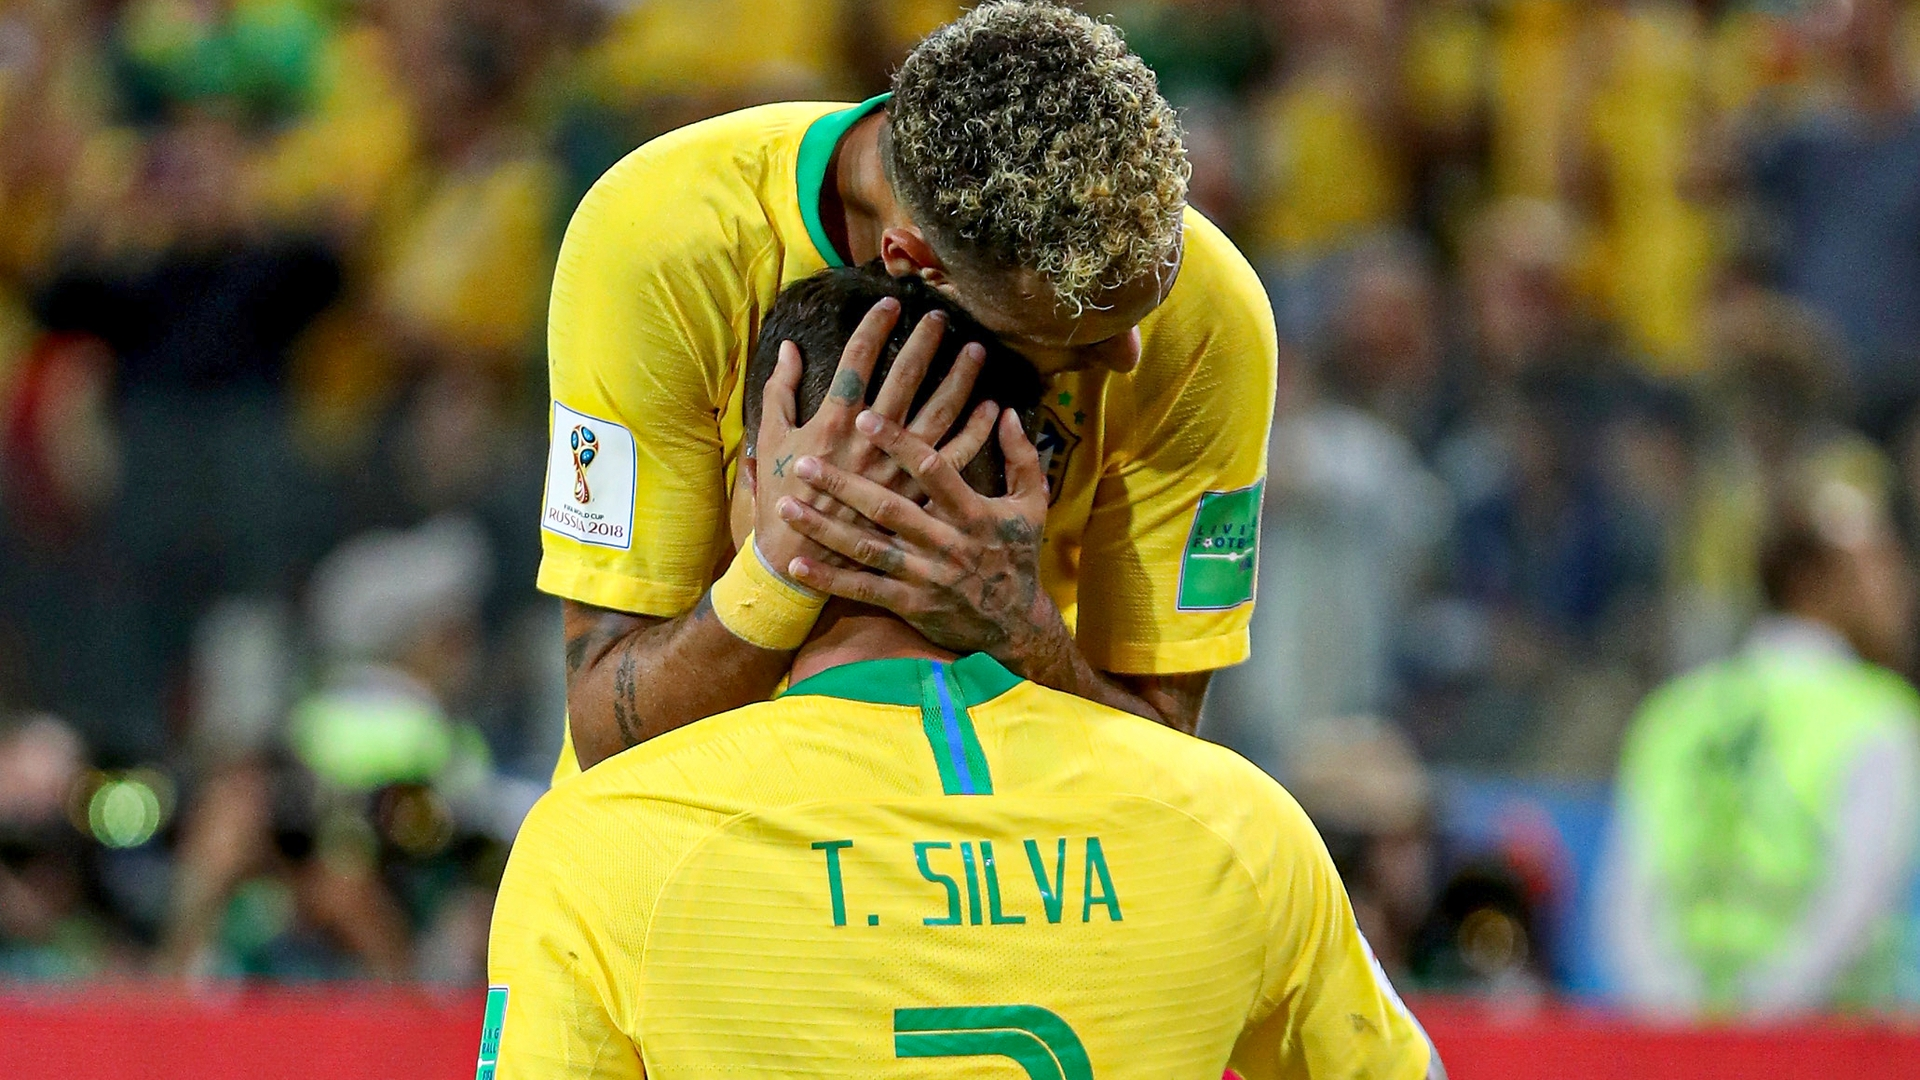 Brazil vs Uruguay LIVE in FIFA World Cup Qualifiers: Brazil eyes top of the table finish in the qualifiers as it faces Uruguay, BRA vs URU live streaming, follow for live updates